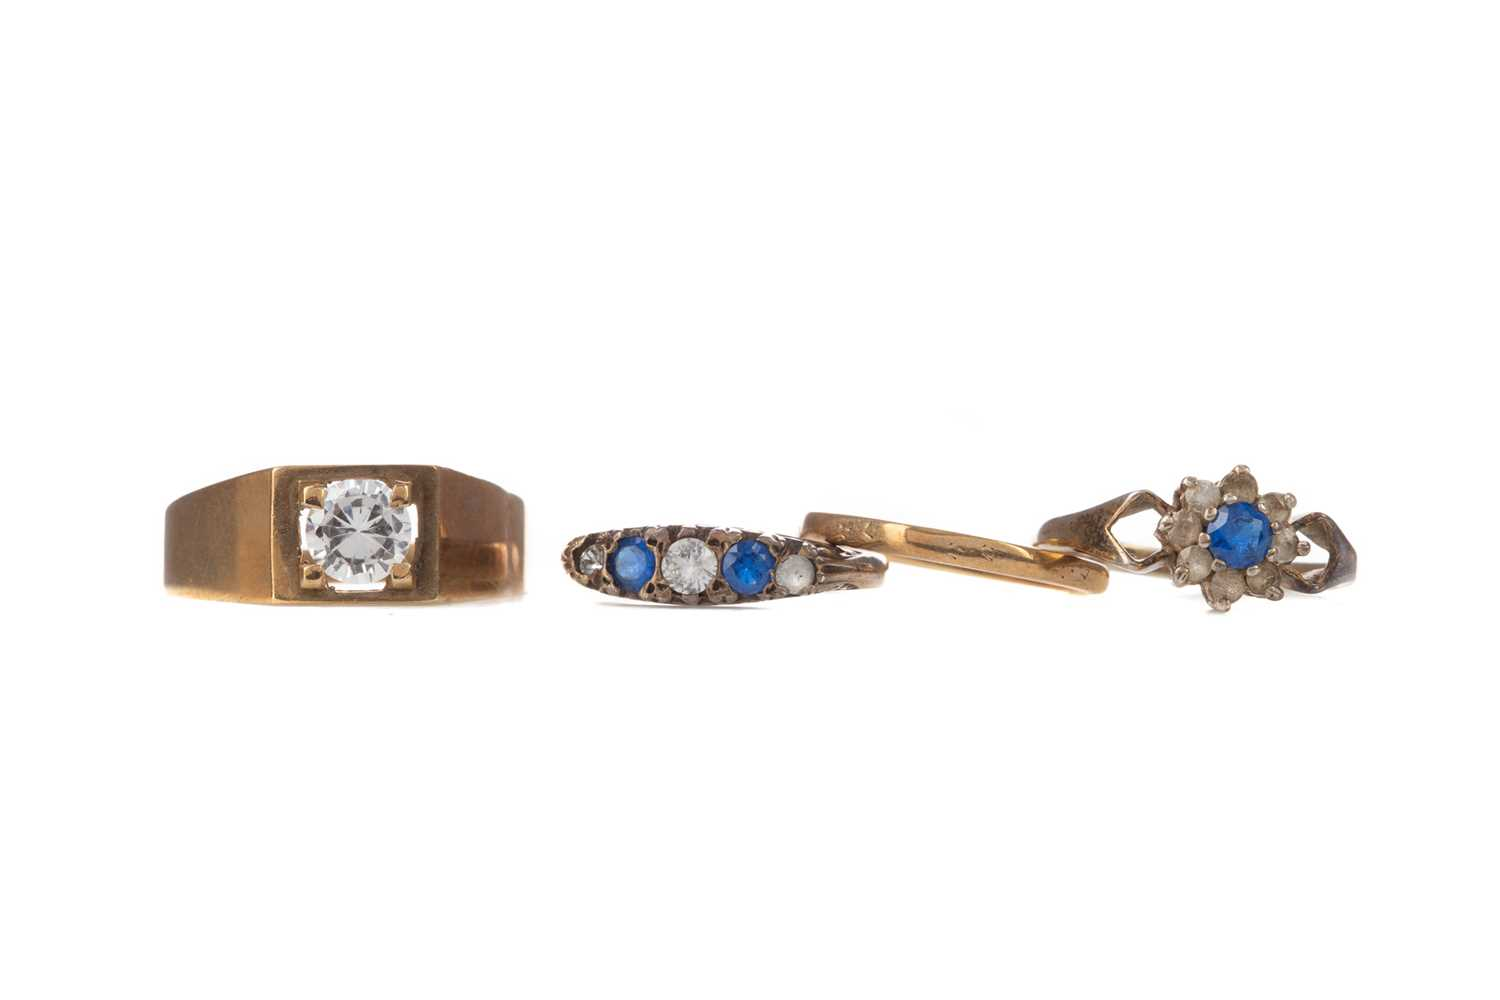 Lot 329 - TWO GOLD RINGS AND TWO SILVER RINGS